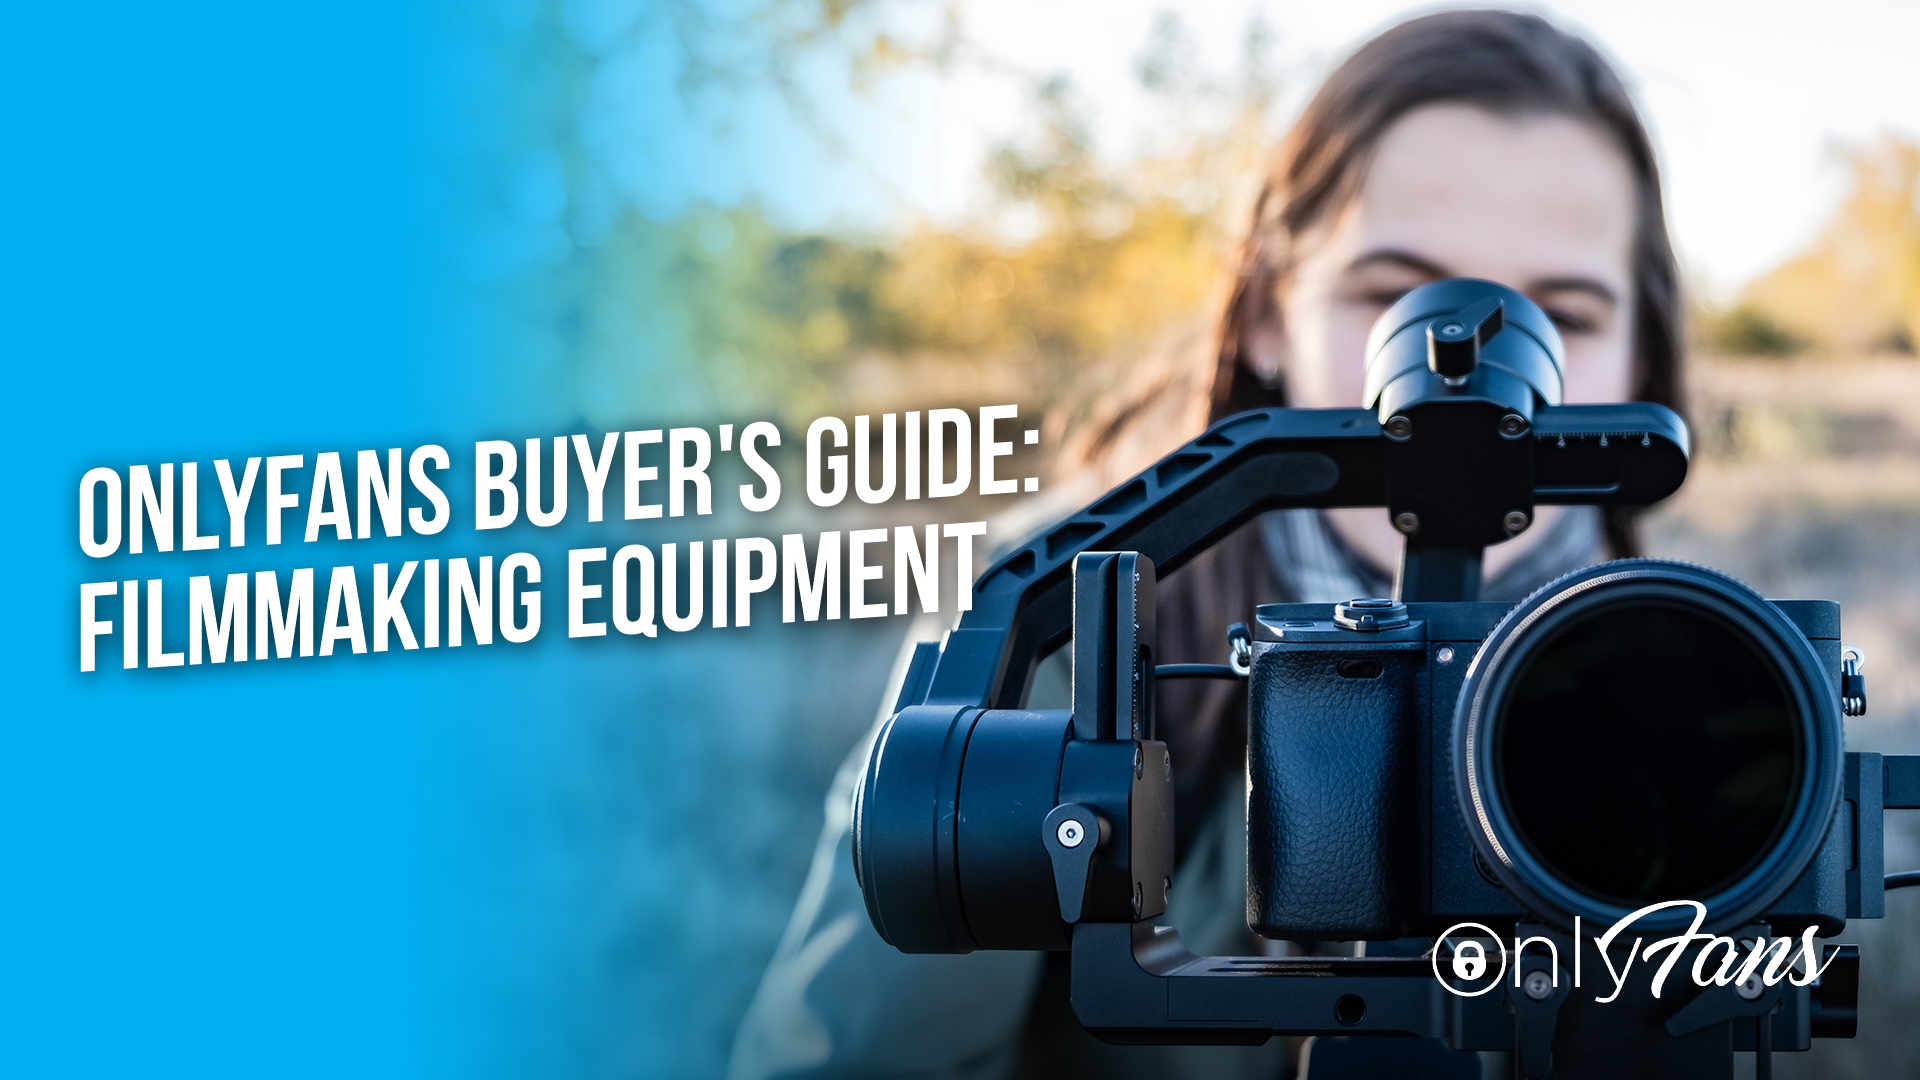 OnlyFans Buyer's Guide: Filmmaking Equipment